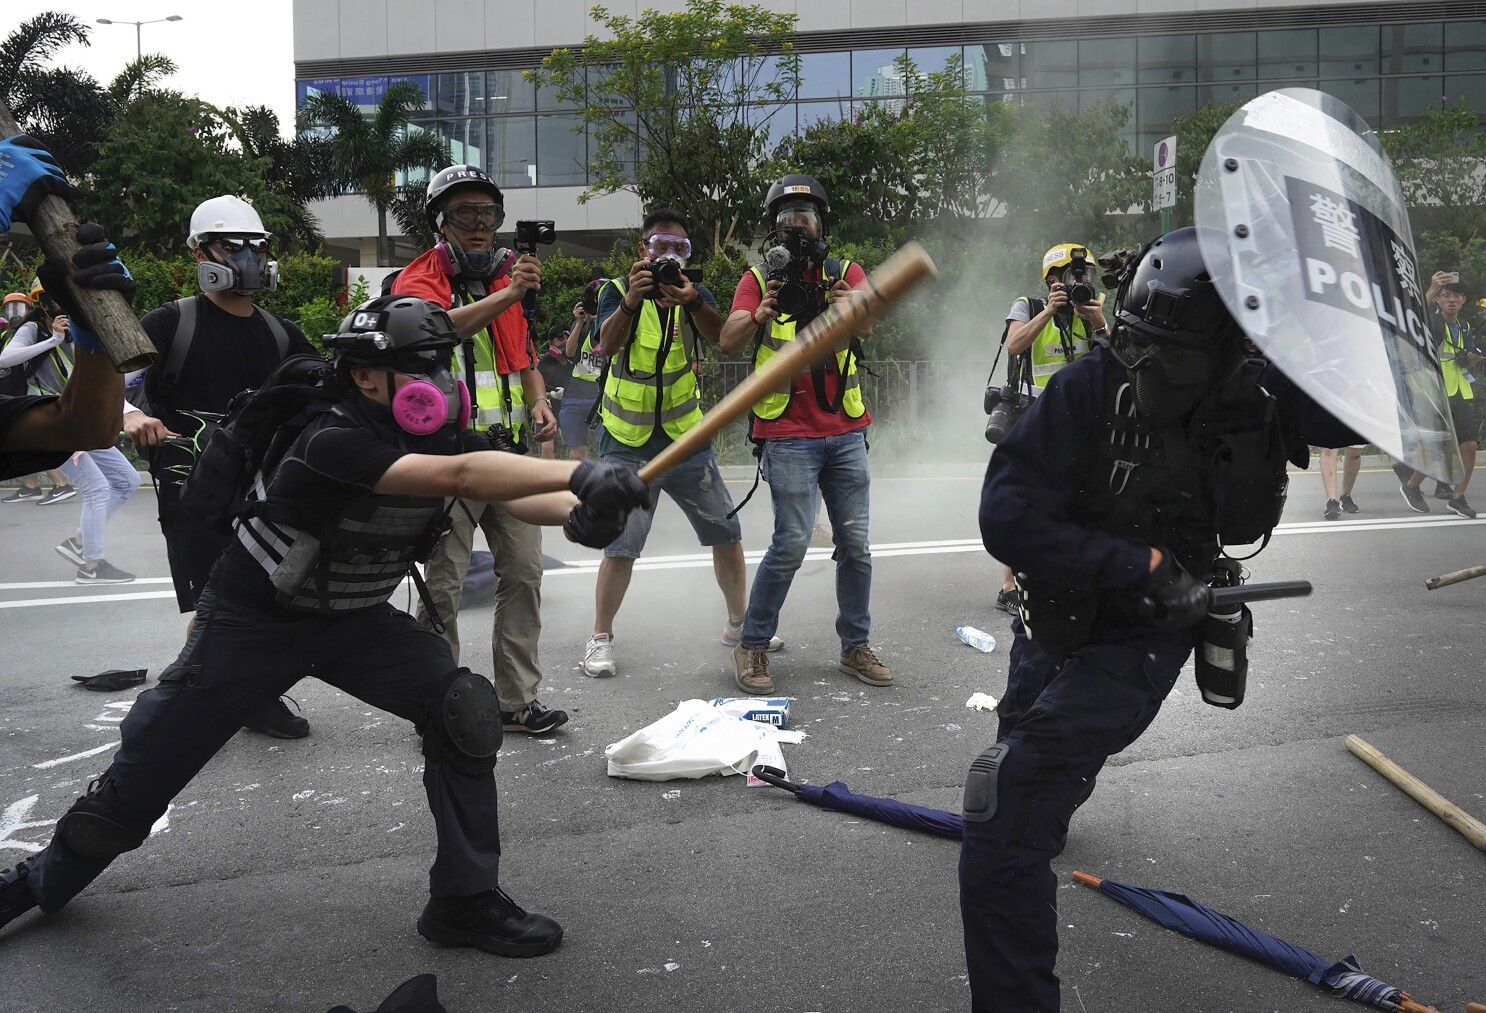 Hong Kong police and protesters clash, ending lull in violence